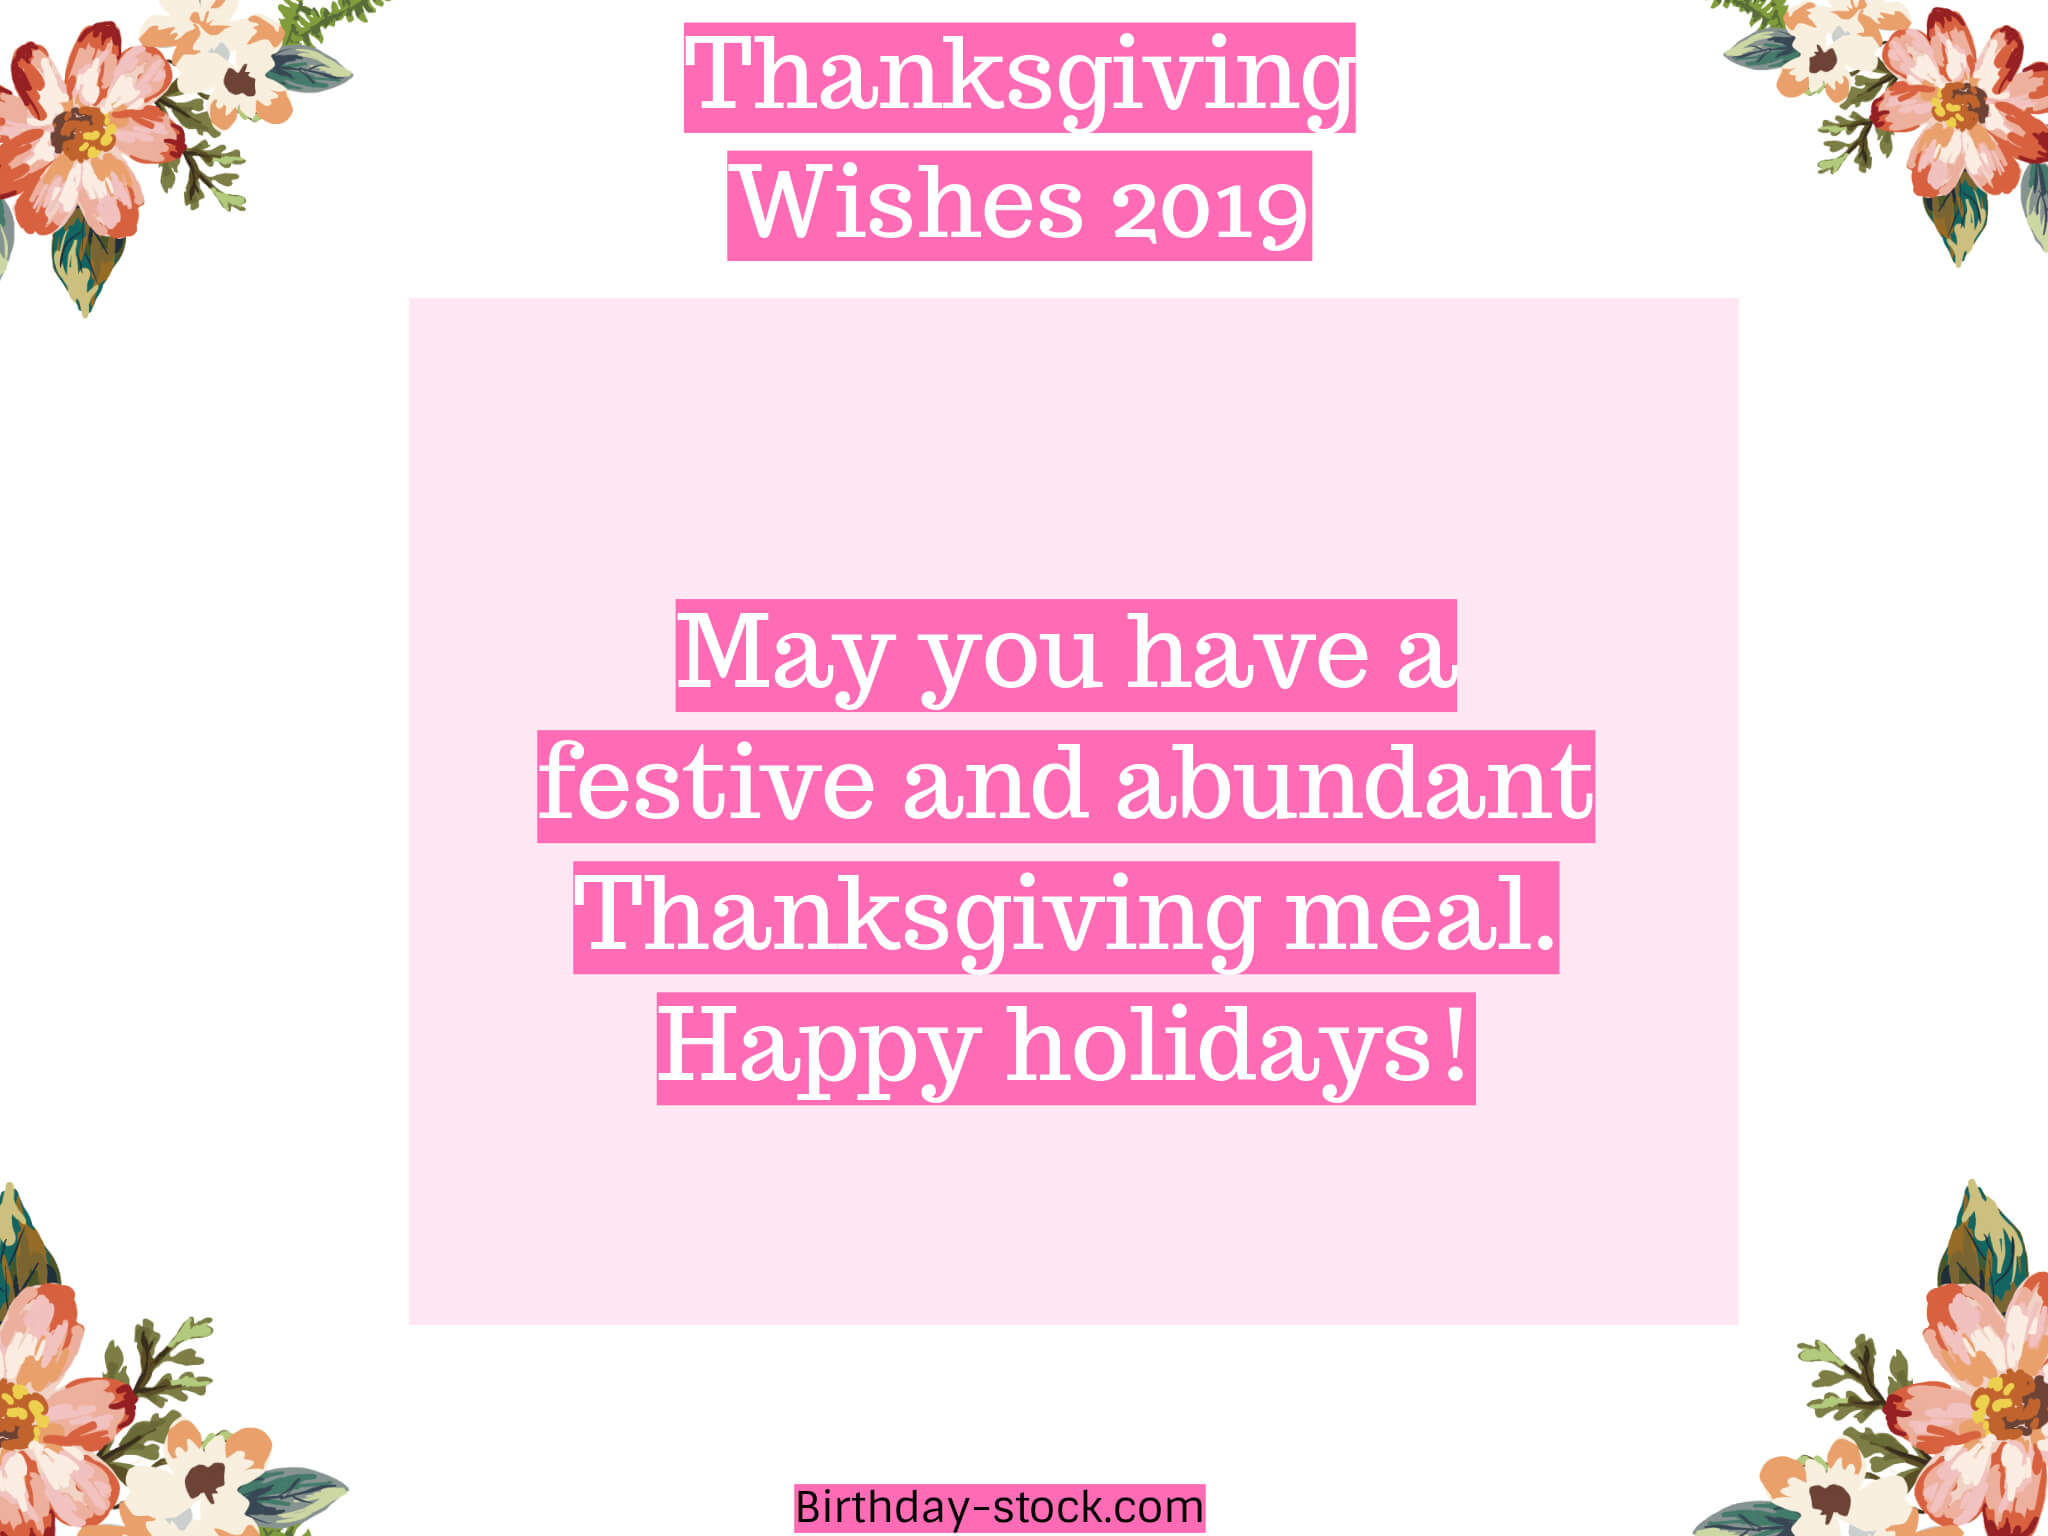 Happy Thanksgiving Quotes Wallpapers 2019